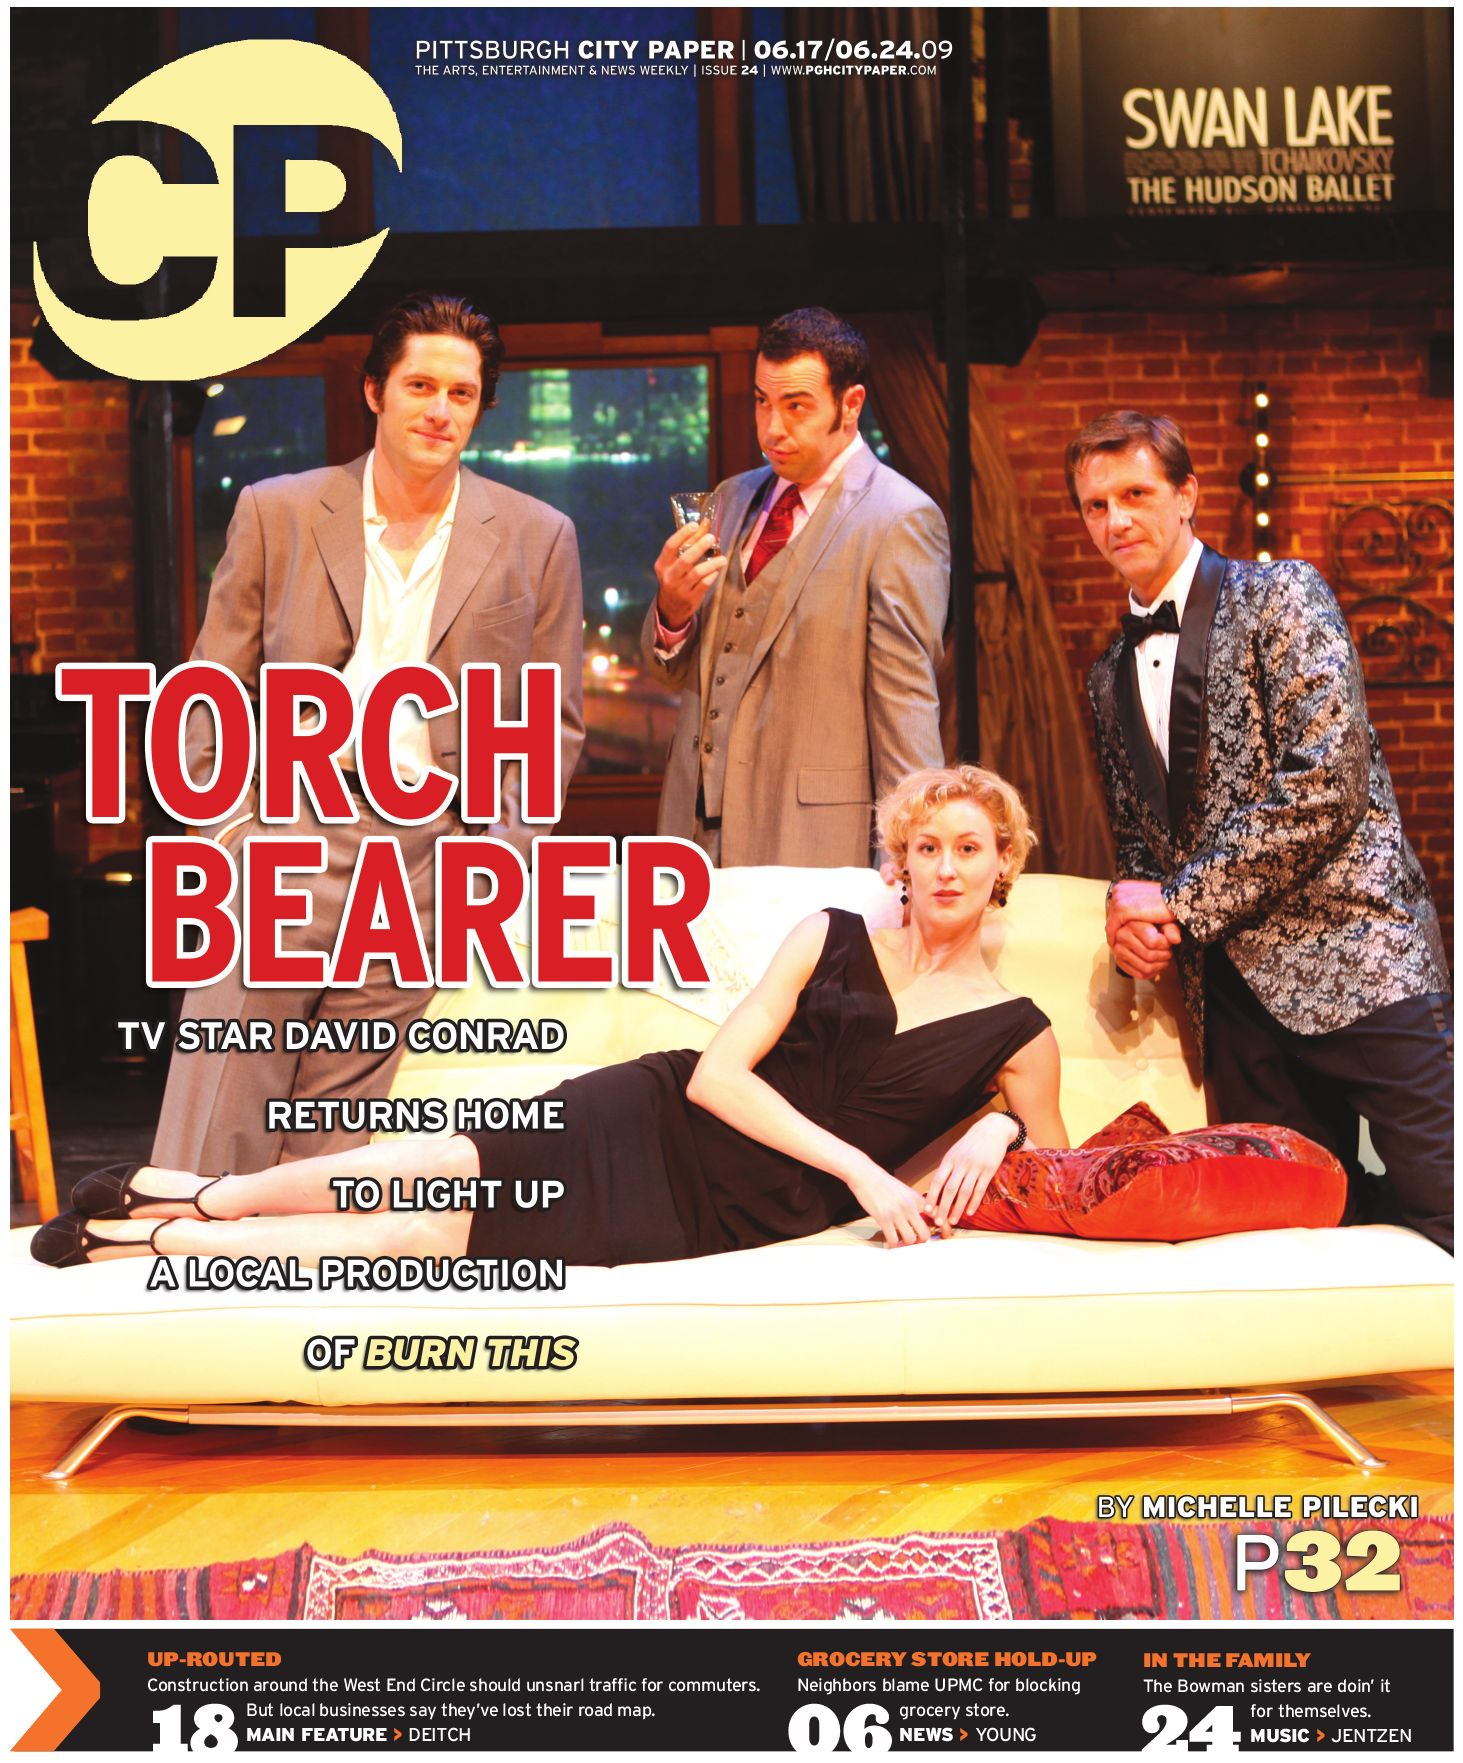 city paper pittsburgh Pittsburgh city paper is pittsburgh's leading arts & entertainment free  newsweekly offering local news & opinion, music, theater & restaurant reviews  and the.